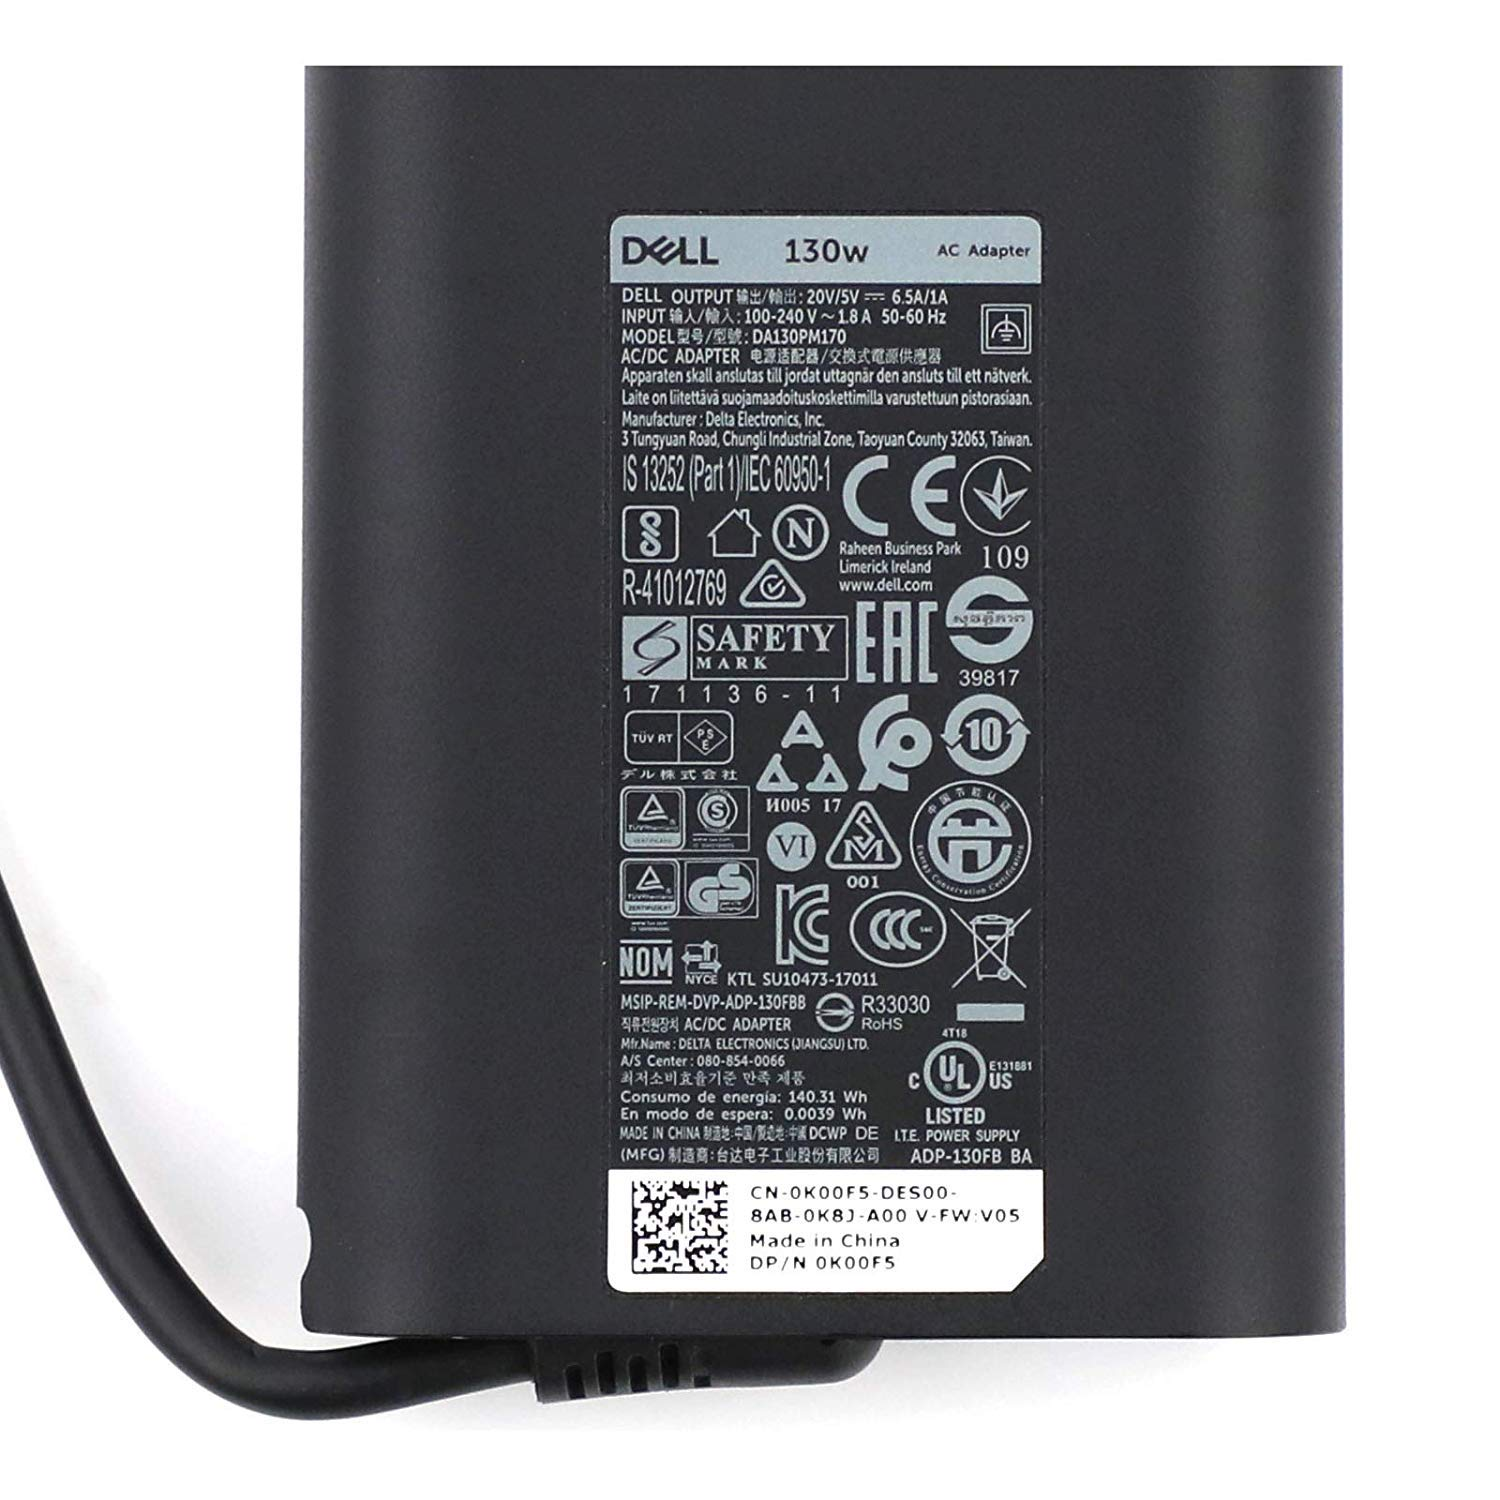 Dell 20V 6.5A 130W USB Type C 0K00F5 AC adapter for Dell XPS 2-in-1 4K Touch-Screen Laptop Model: XPS9575-7354BLK-PUS, Compatible with P/N: 0K00F5, K00F5 by Dell (Image #8)